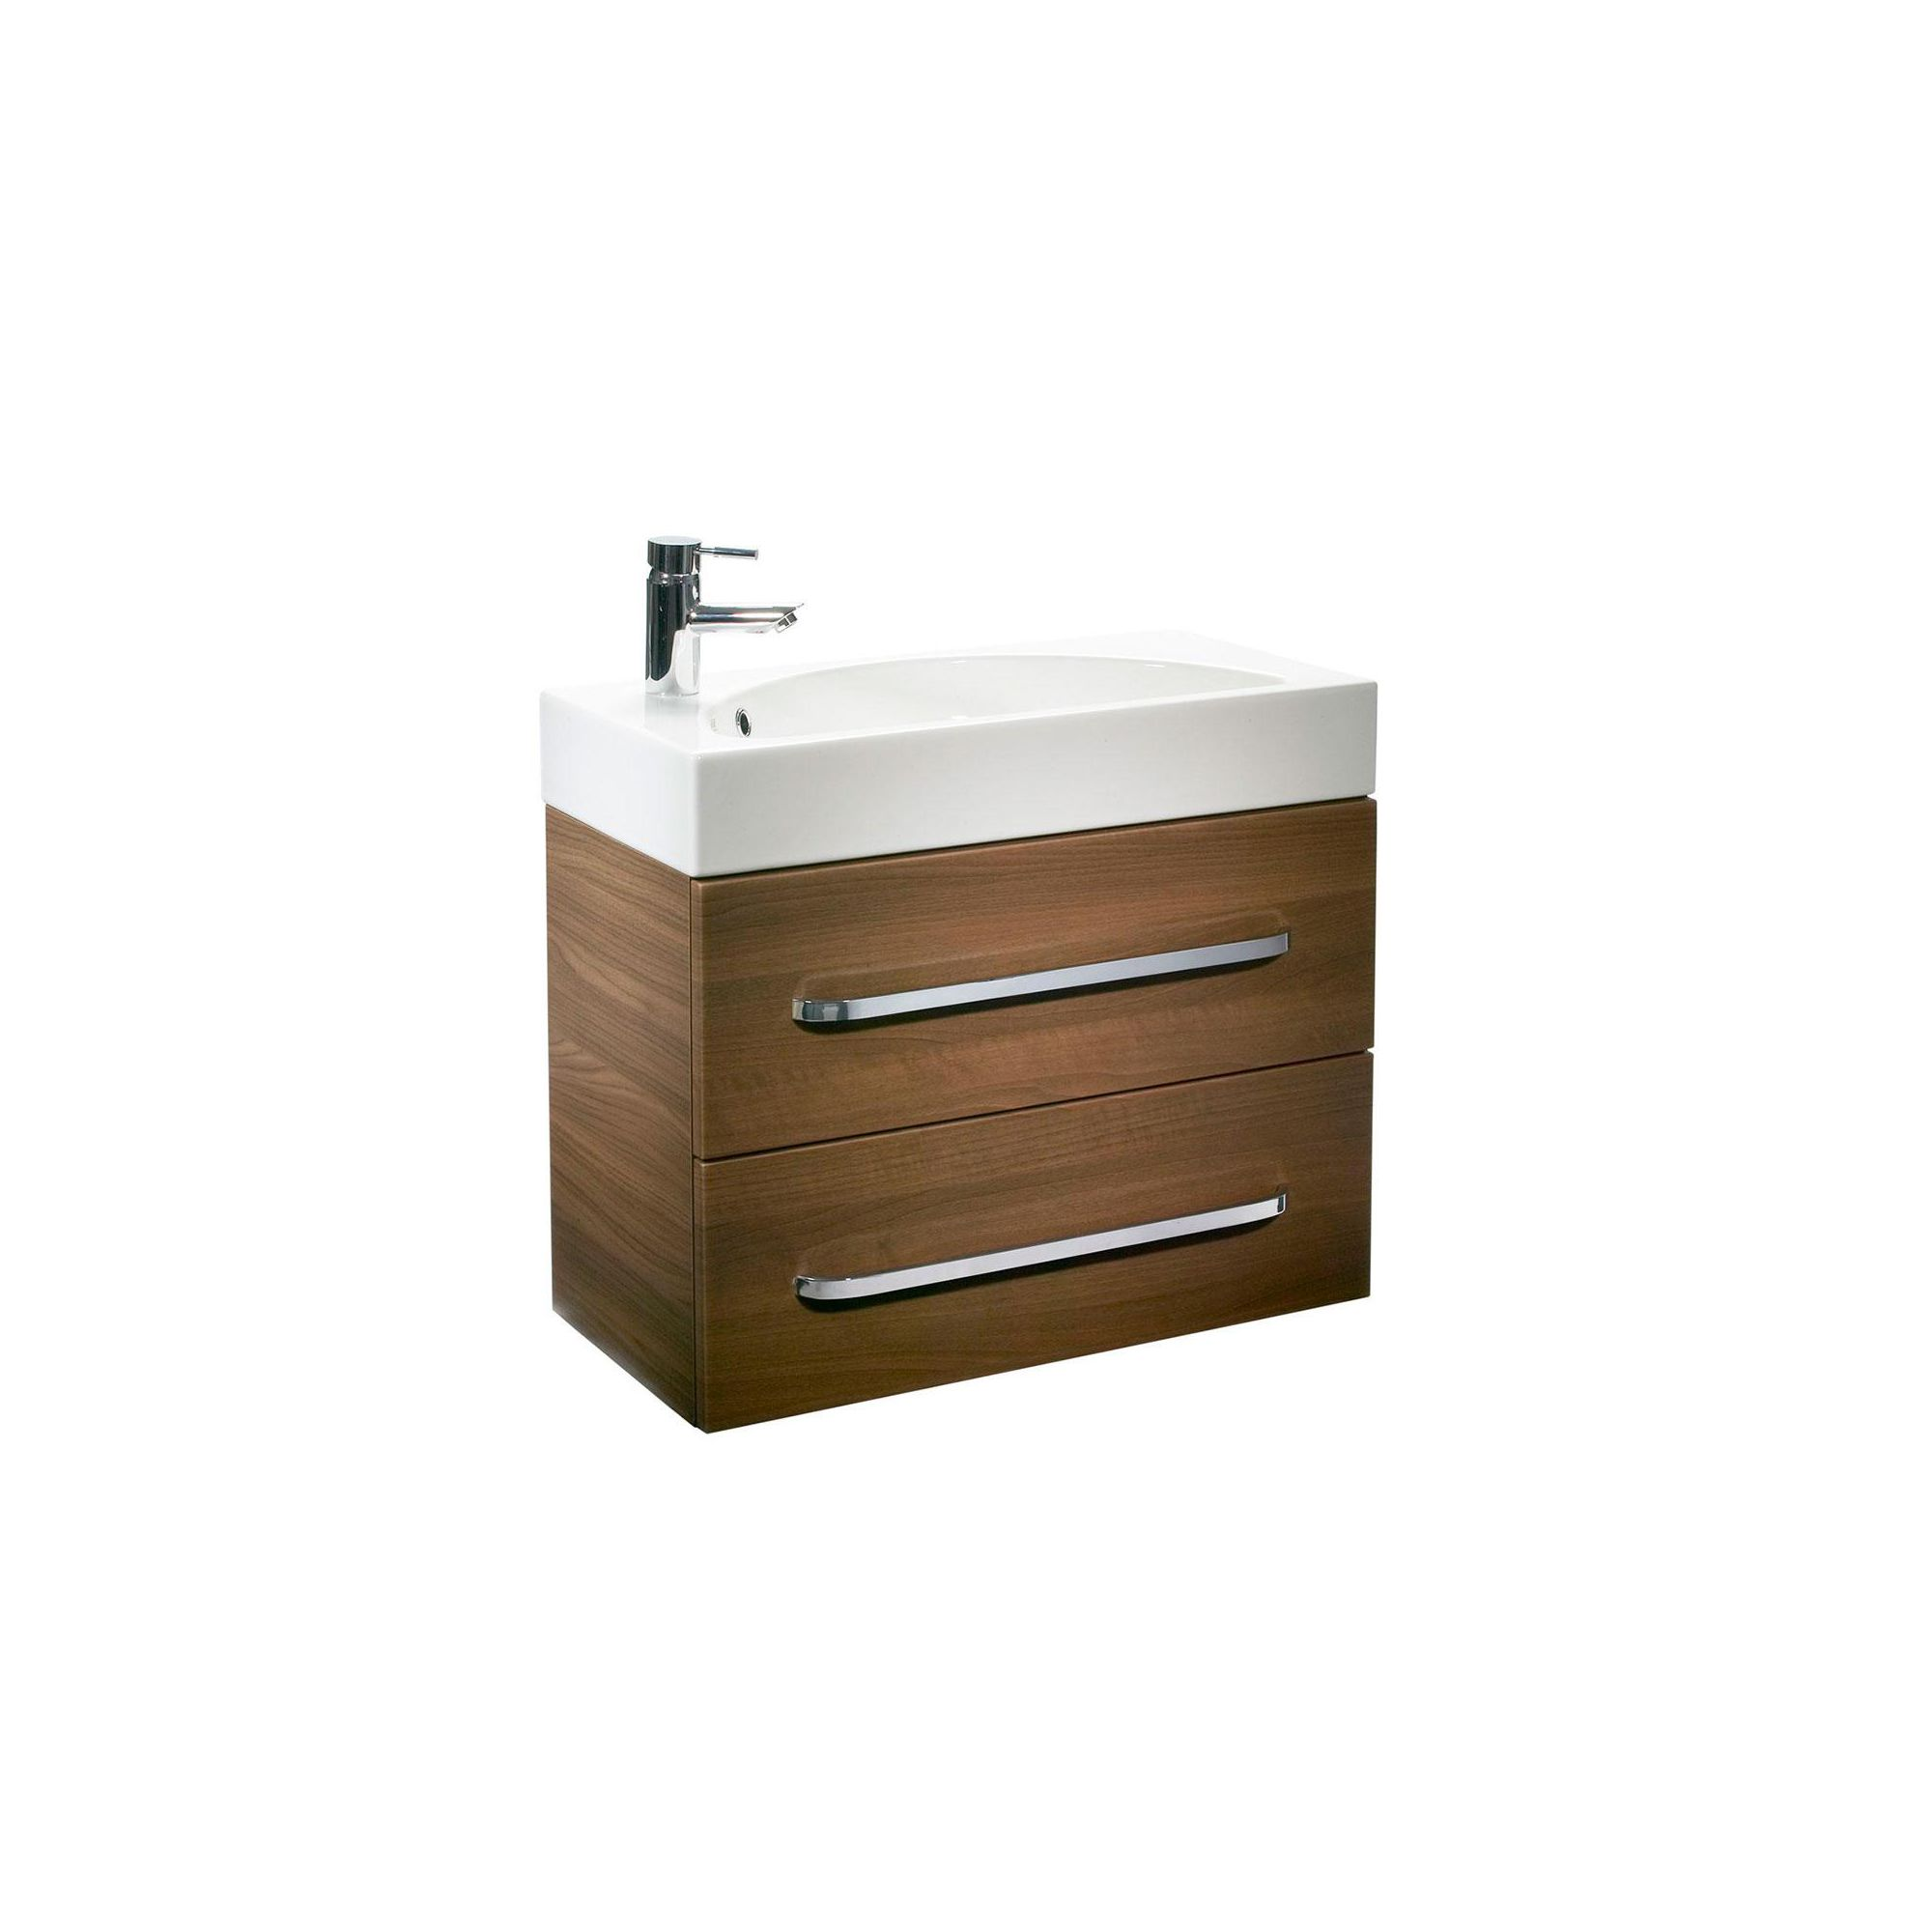 Wall mounted bathroom cabinets uk specials for bridgeport for Bathroom cabinets 700mm